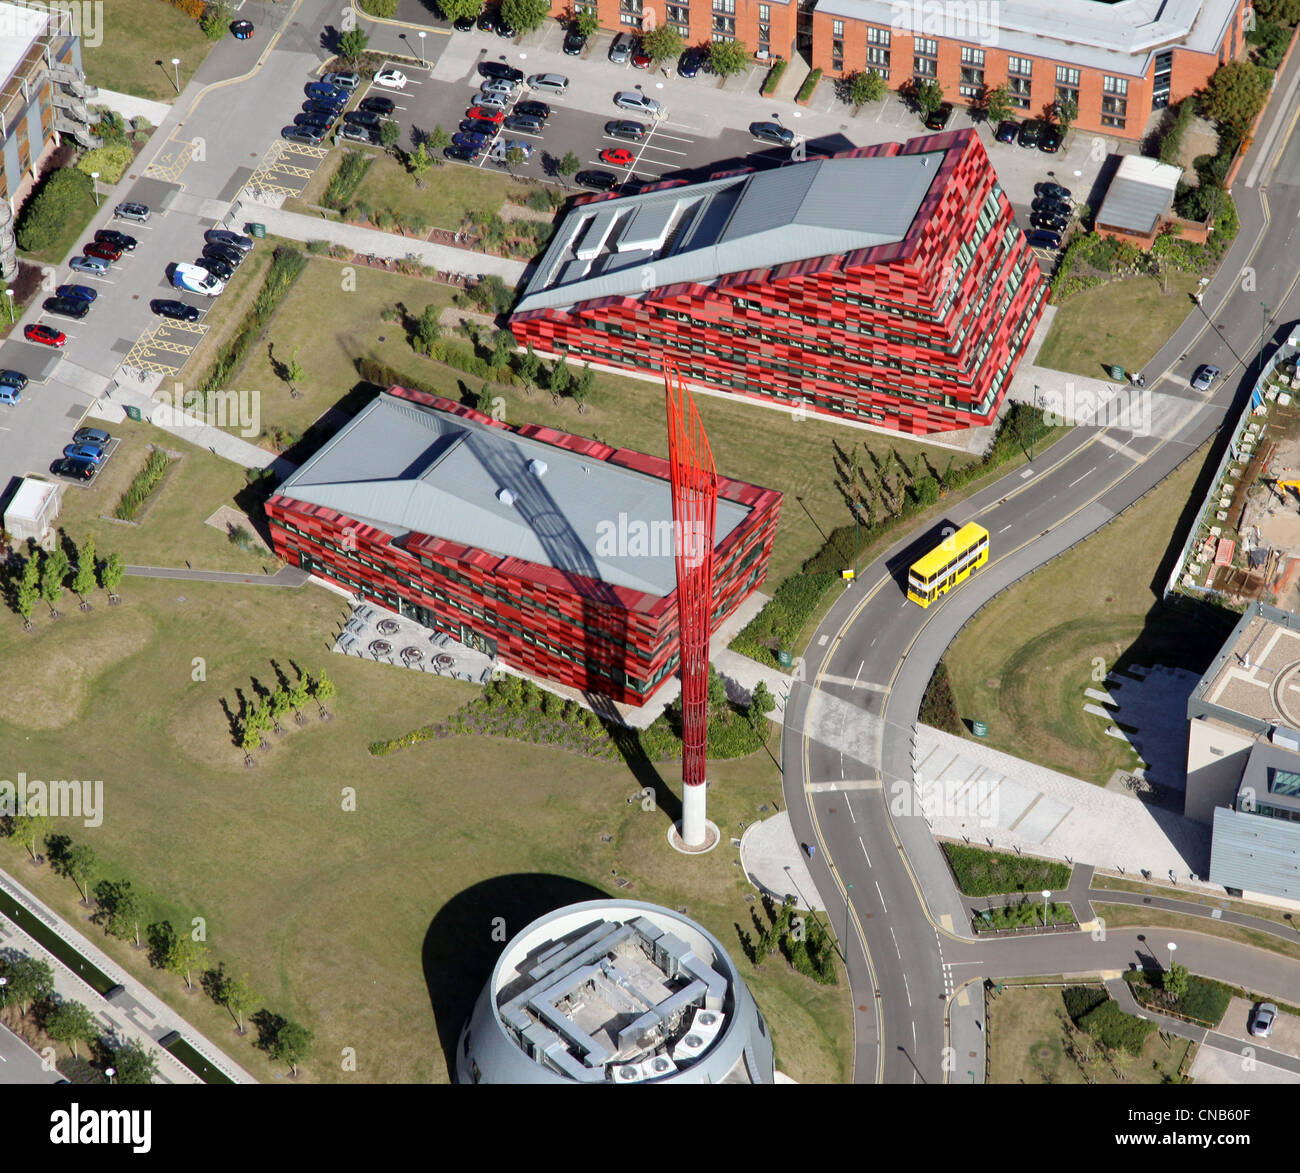 aerial view of various buildings on the Jubilee Campus, Nottingham University - Stock Image